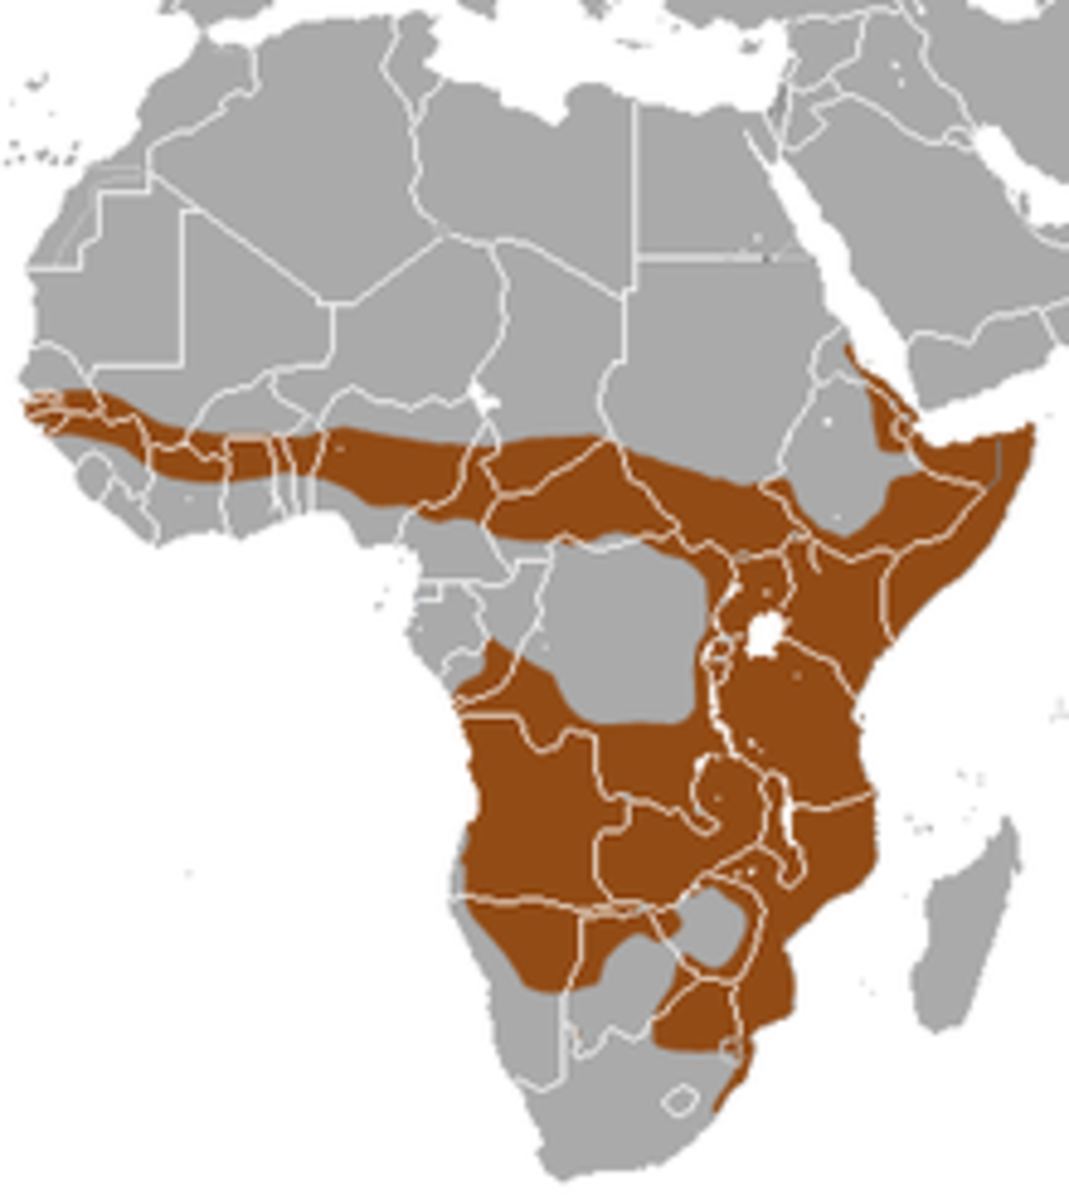 Central & Eastern Africa & South Africa